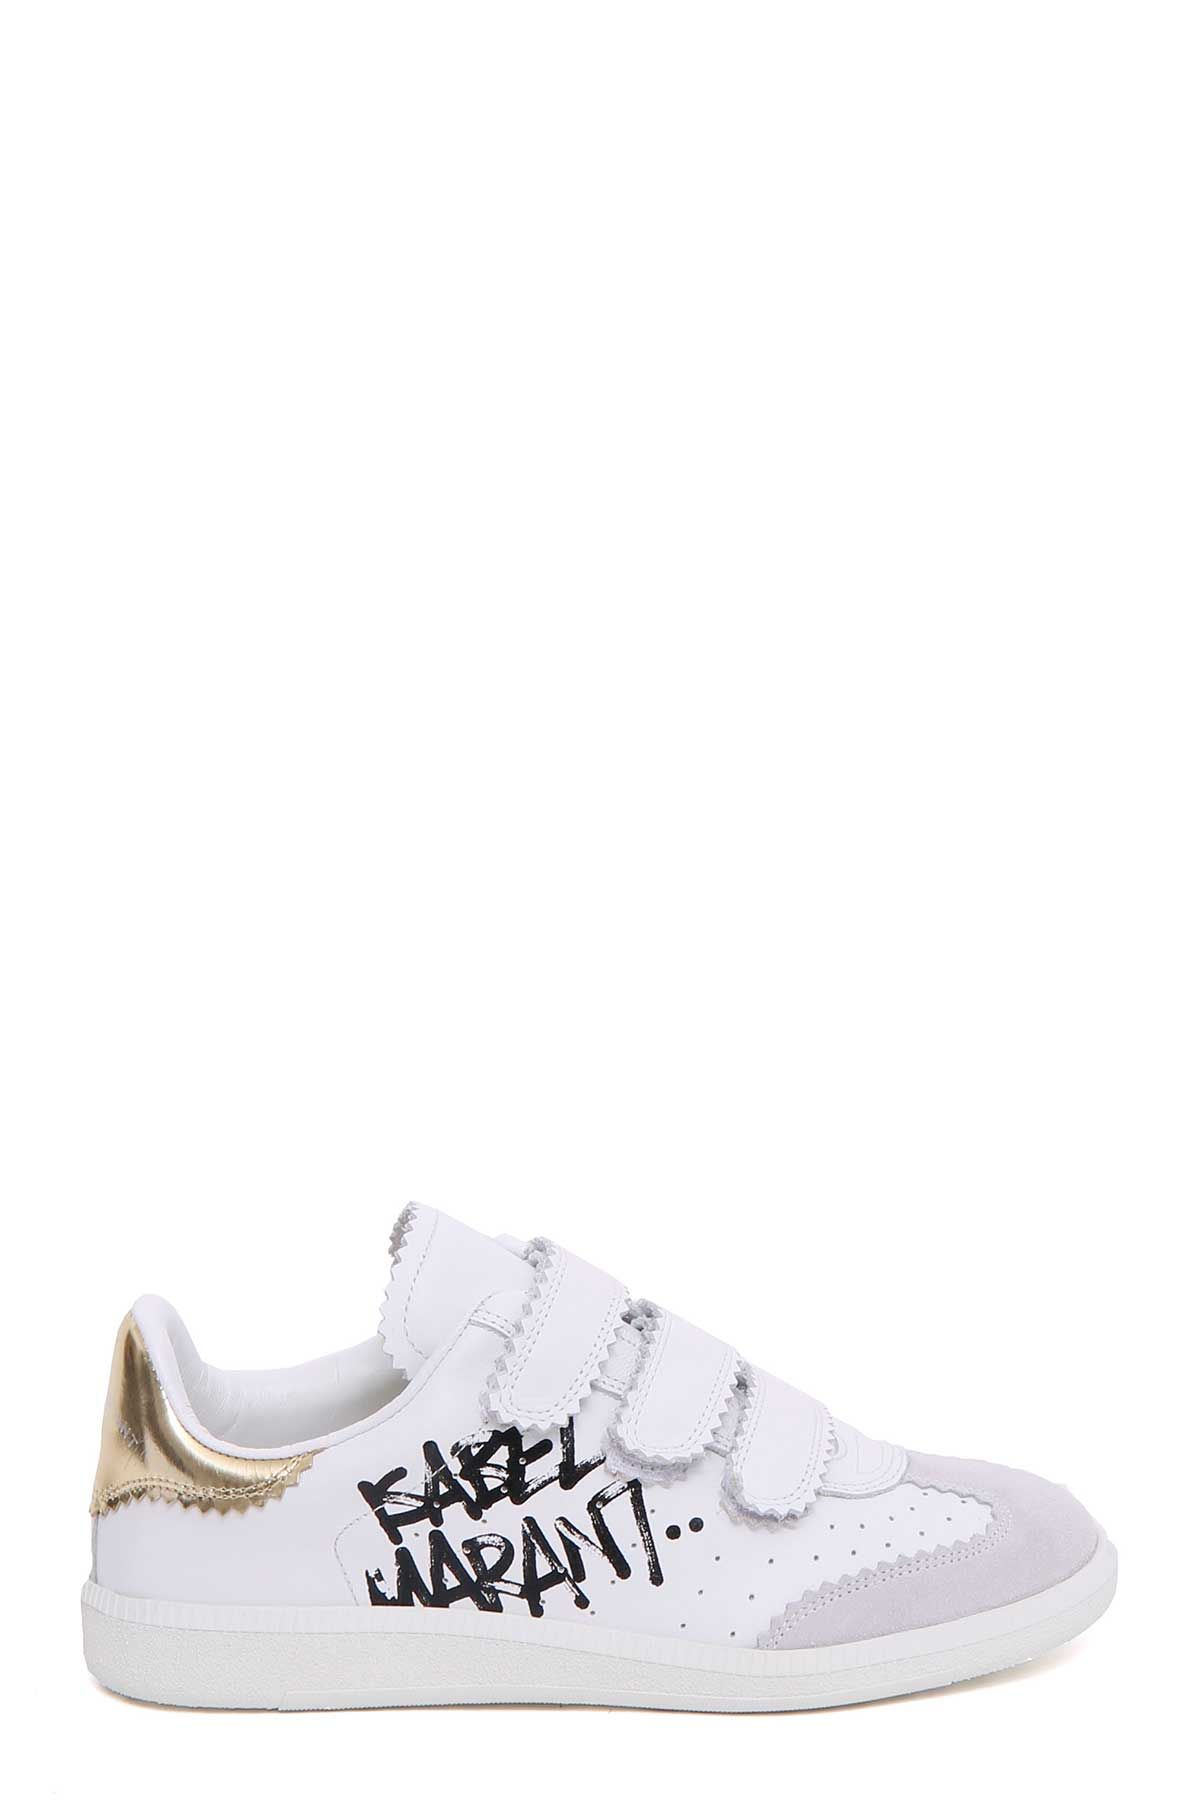 Isabel Marant Leather And Suede beth Sneakers